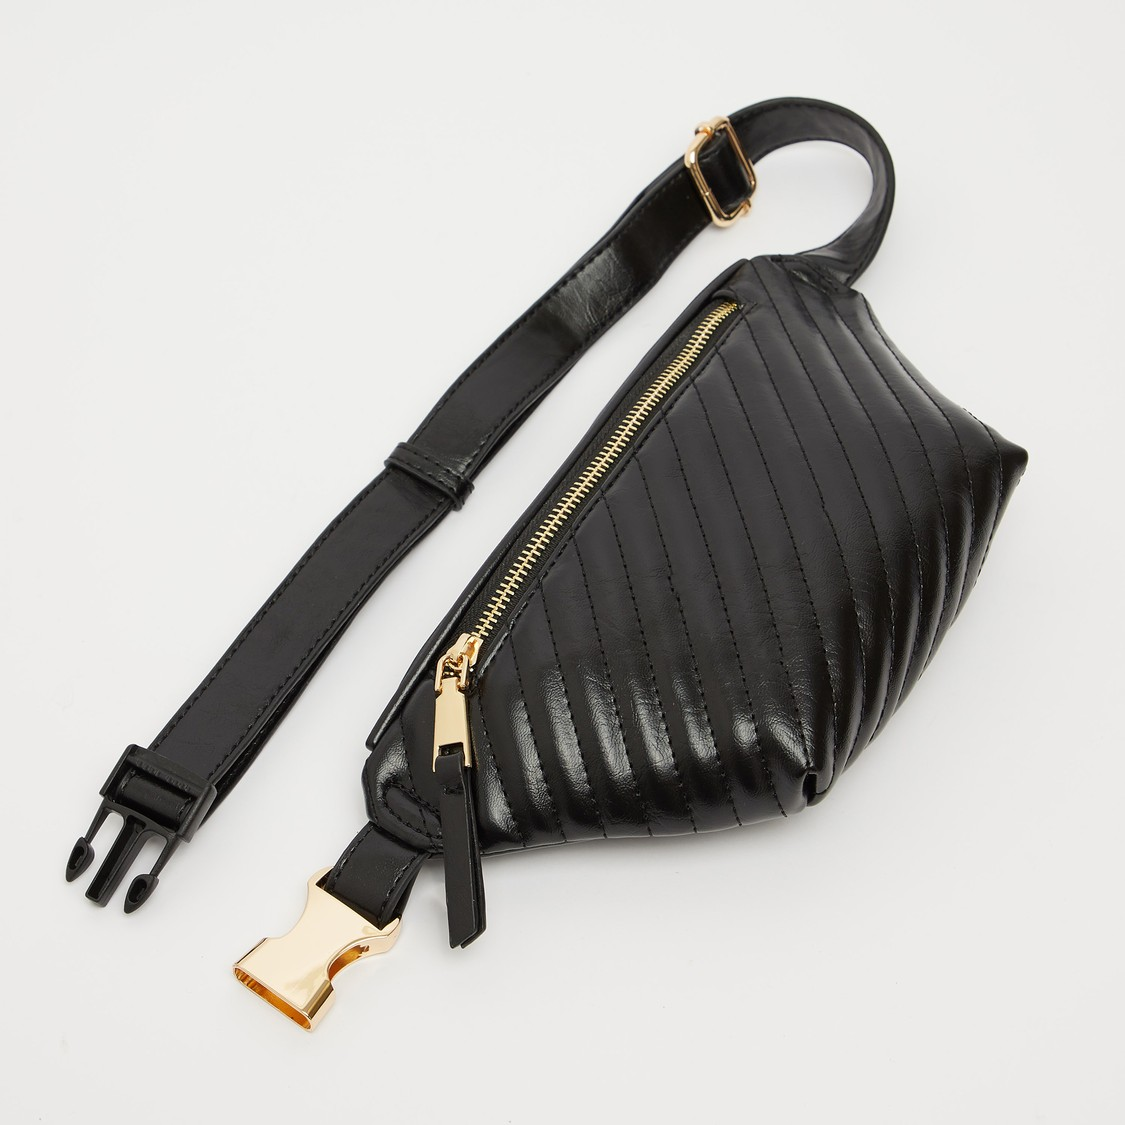 Textured Fanny Pack with Buckle Closure